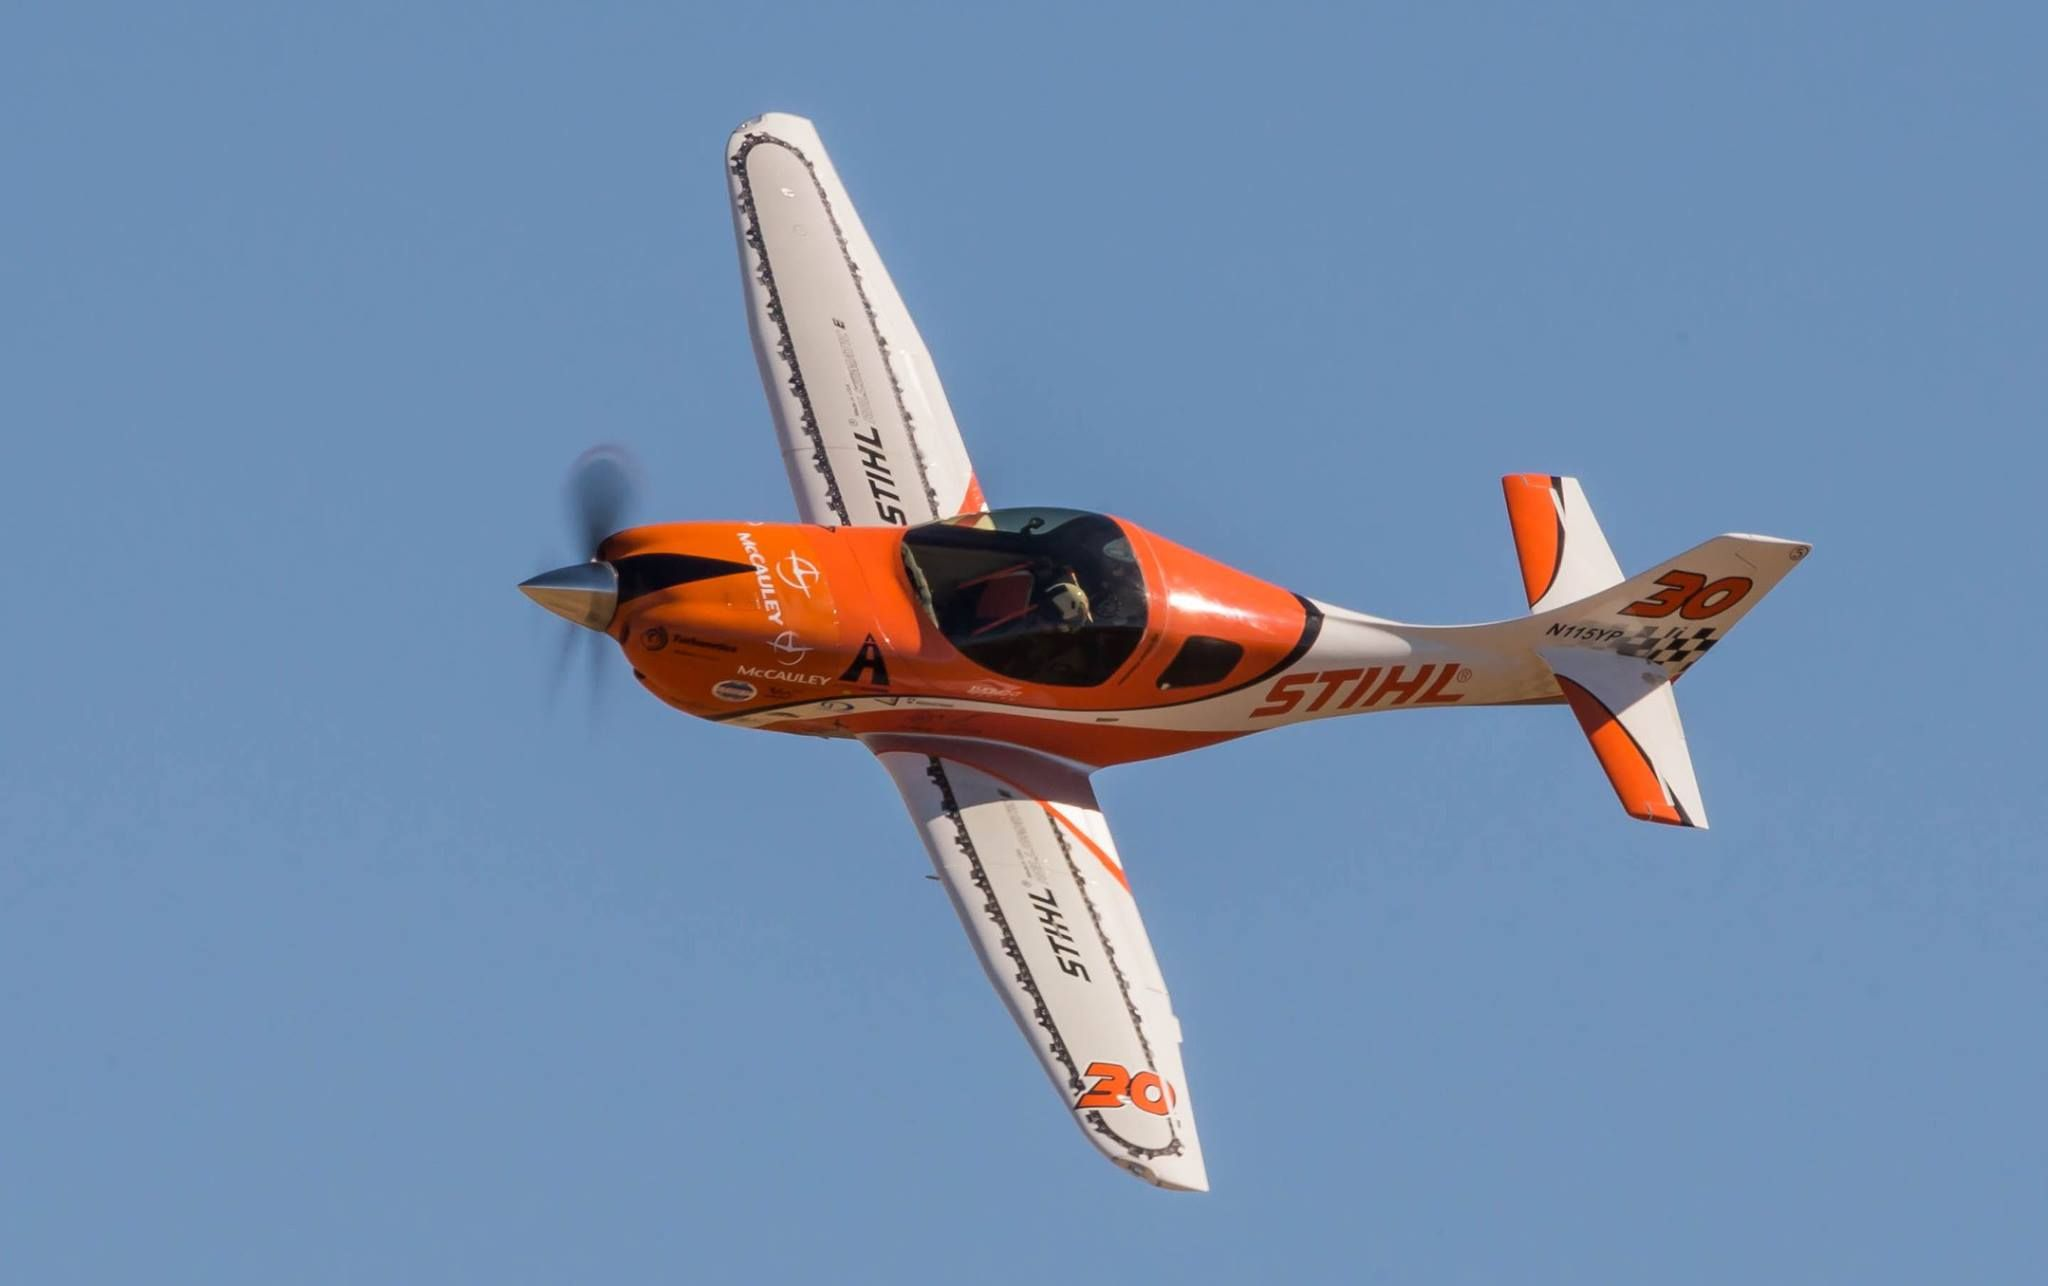 30 STIHL at Reno 2016 is a sleek carbon fiber race plane is a